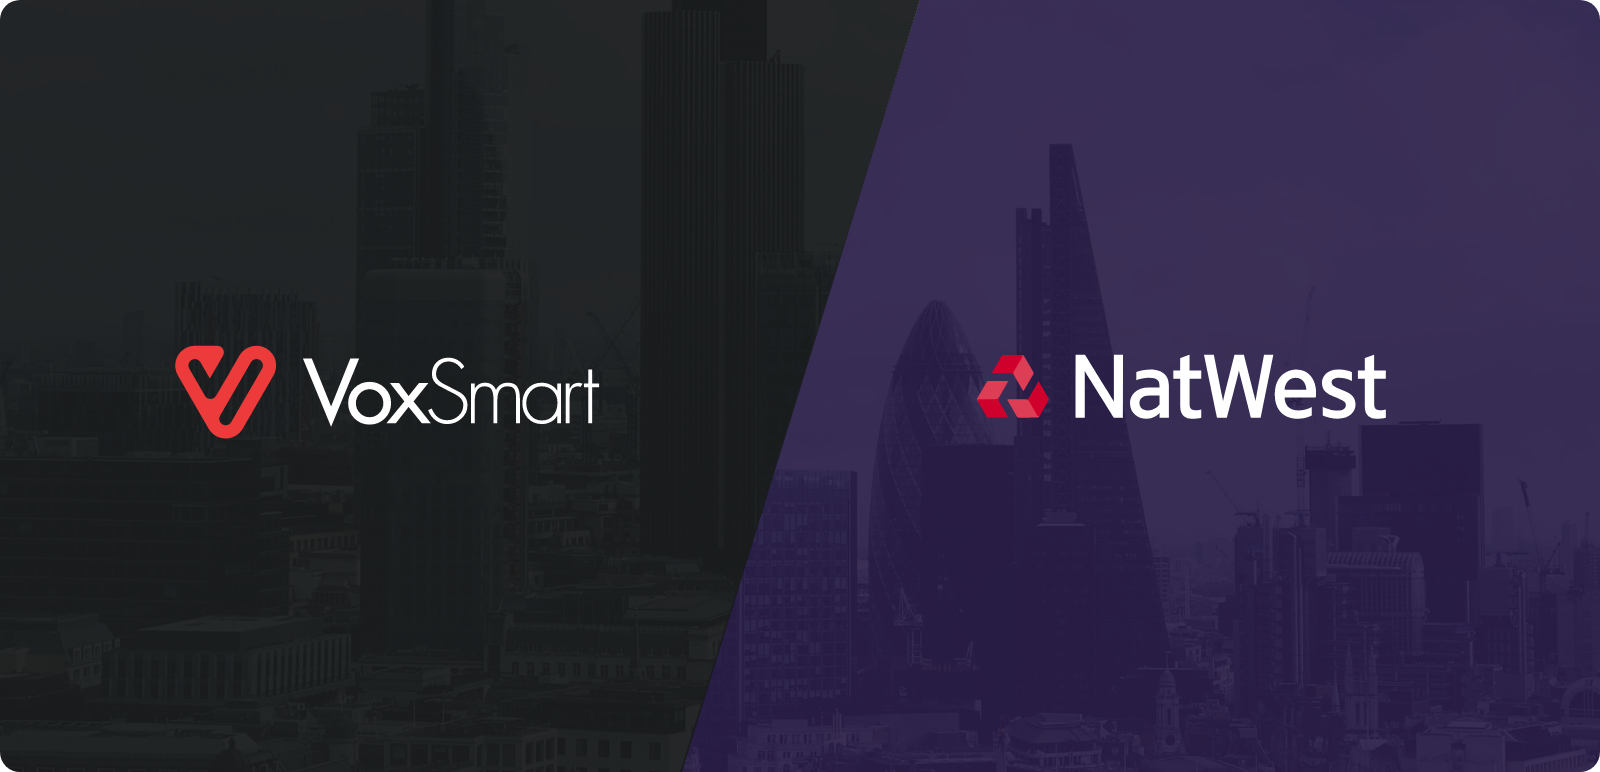 VoxSmart receives £5.5m funding from NatWest to accelerate growth